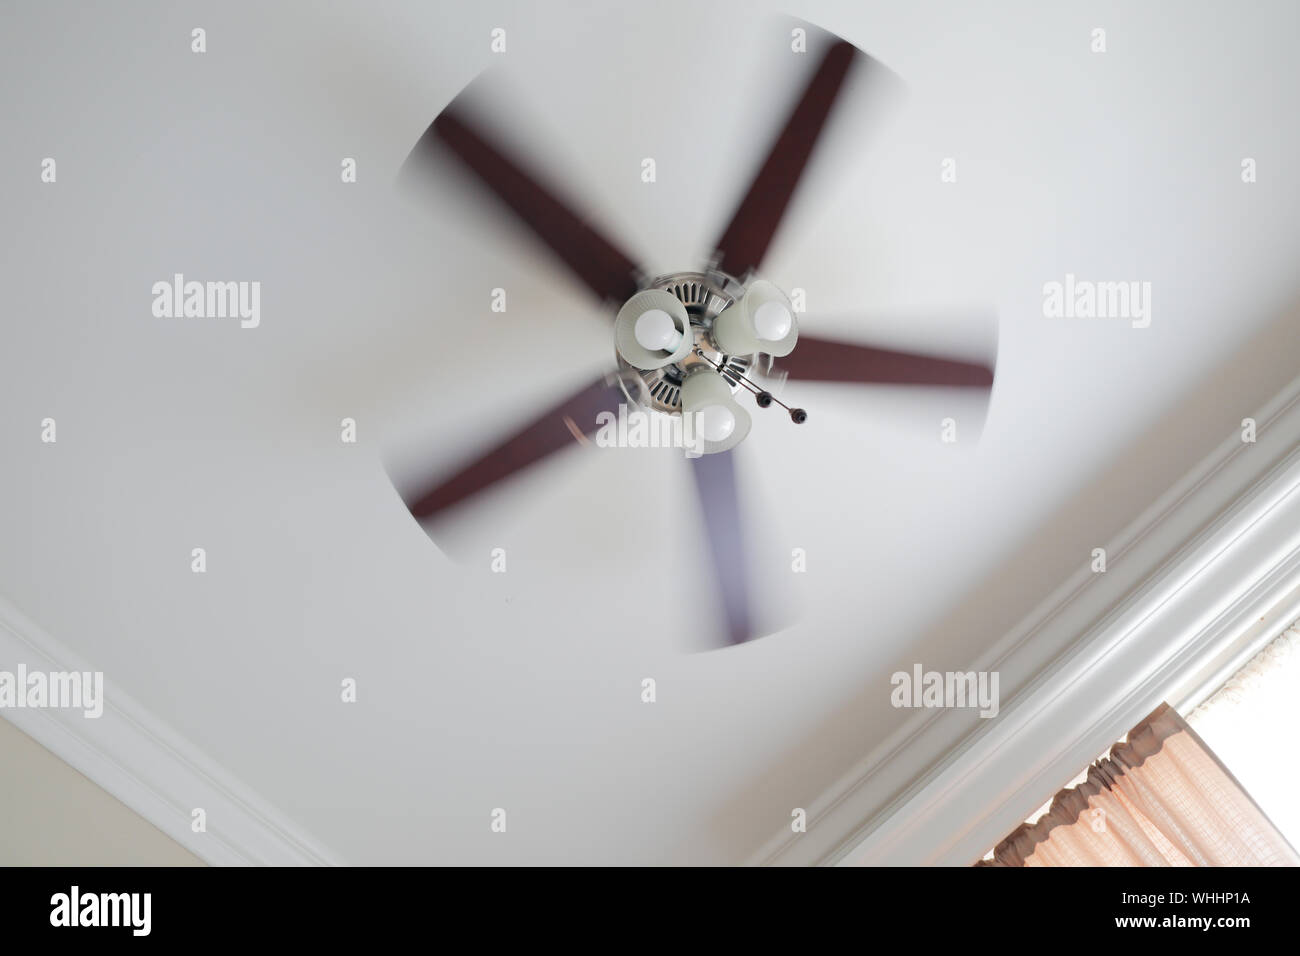 Ceiling fan with a ceiling lamp turned on, working with blurred blades in a living room, ceiling with moldings, curtain with shades and rods. Stock Photo